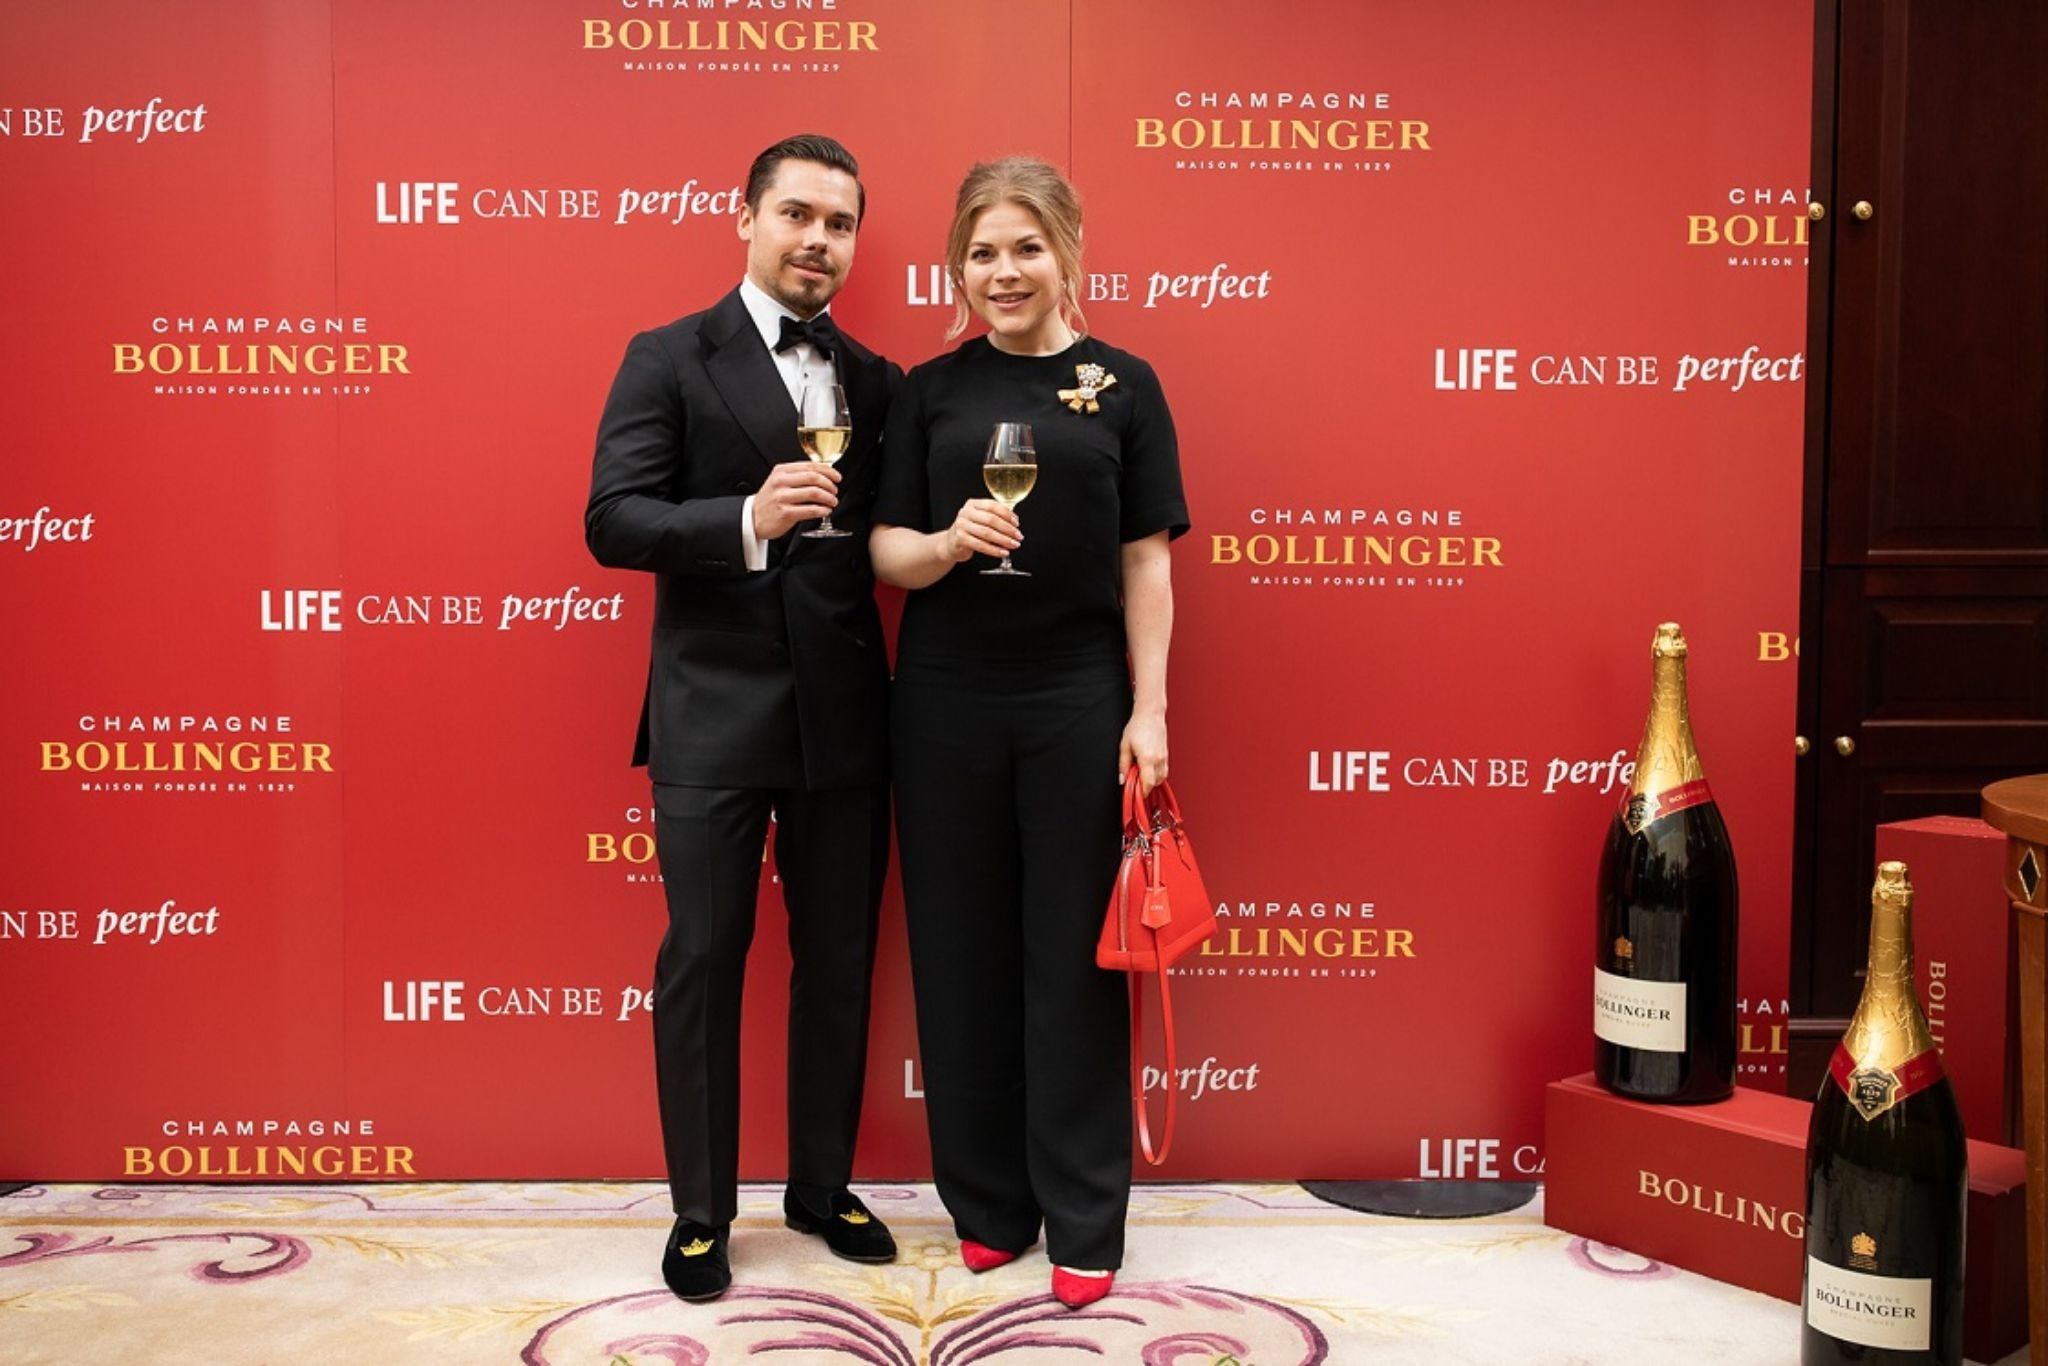 Black_tie_suitsupply_bollinger_event